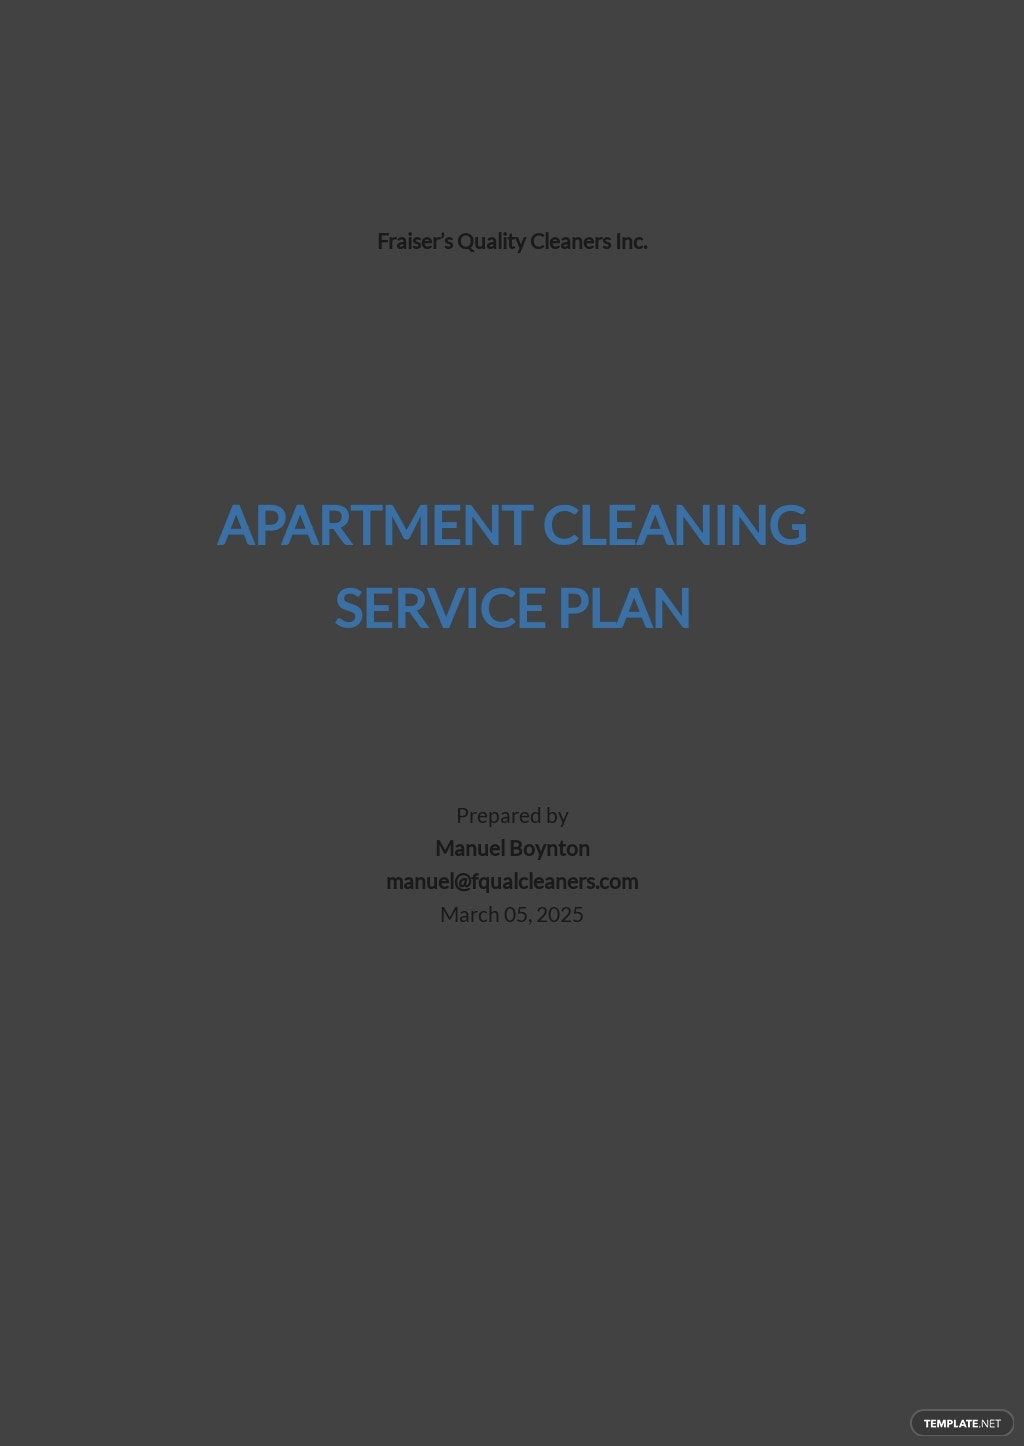 Apartment Cleaning Service Plan Template